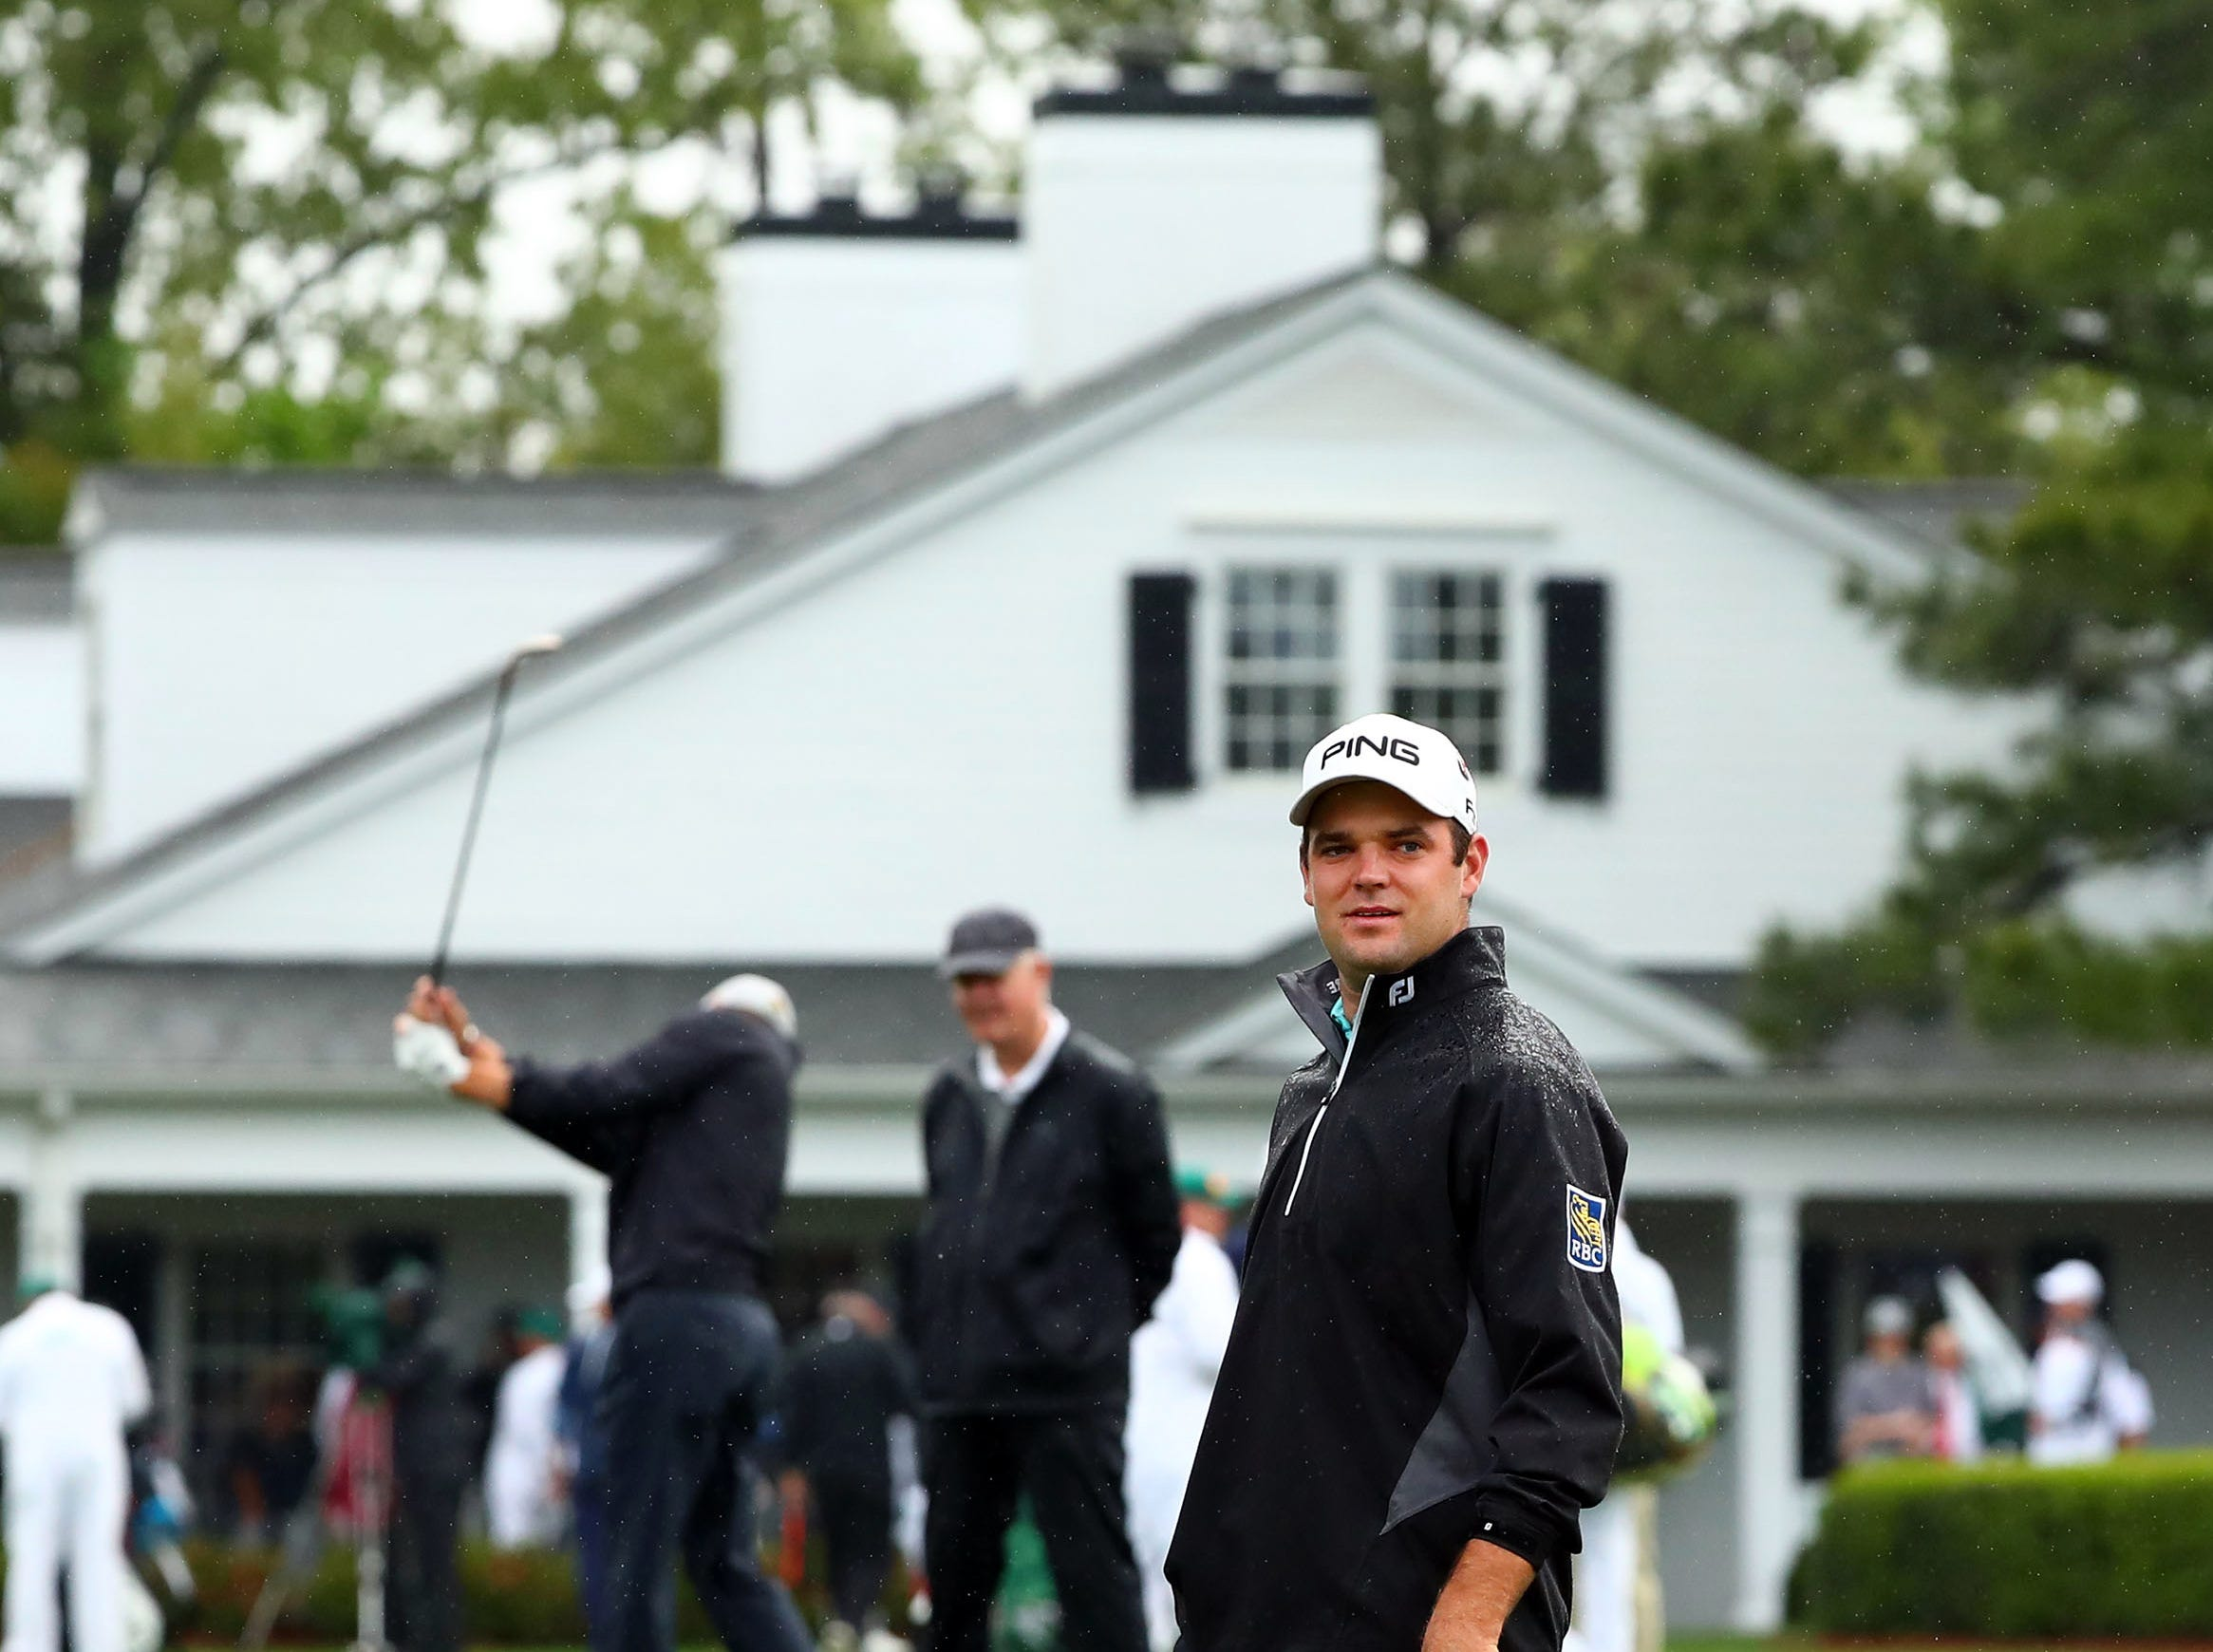 Apr 9, 2019; Augusta, GA, USA; Corey Conners at the practice facility during a practice round for The Masters golf tournament at Augusta National Golf Club. Mandatory Credit: Rob Schumacher-USA TODAY Sports